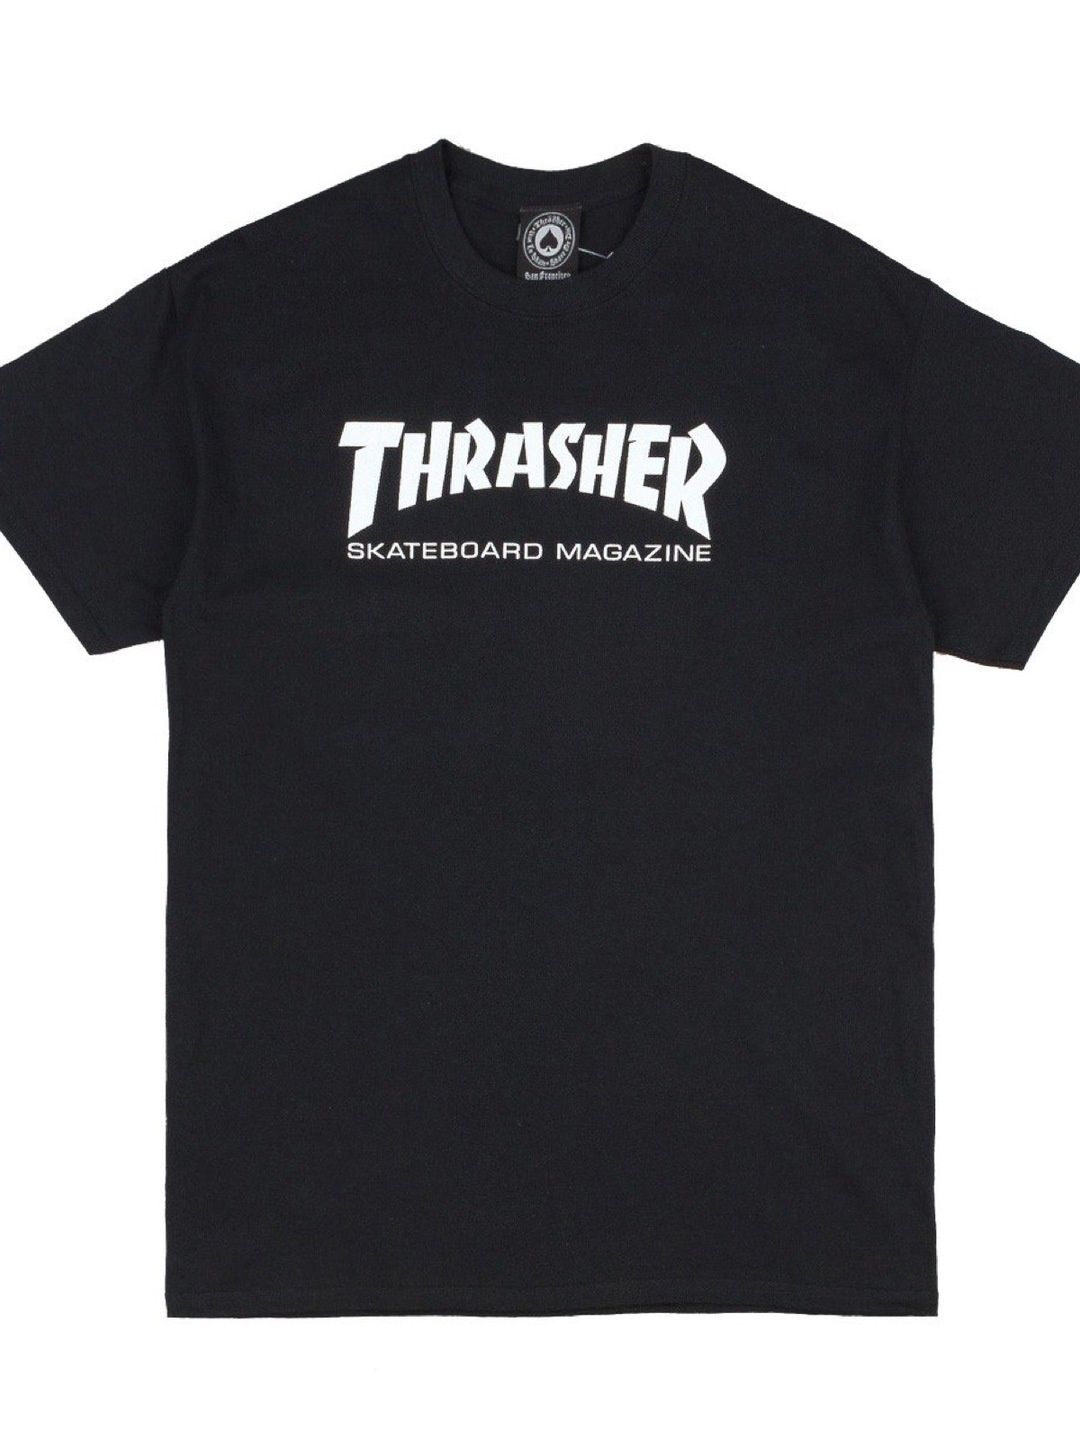 Women's tops & t-shirts - THRASHER photo 3